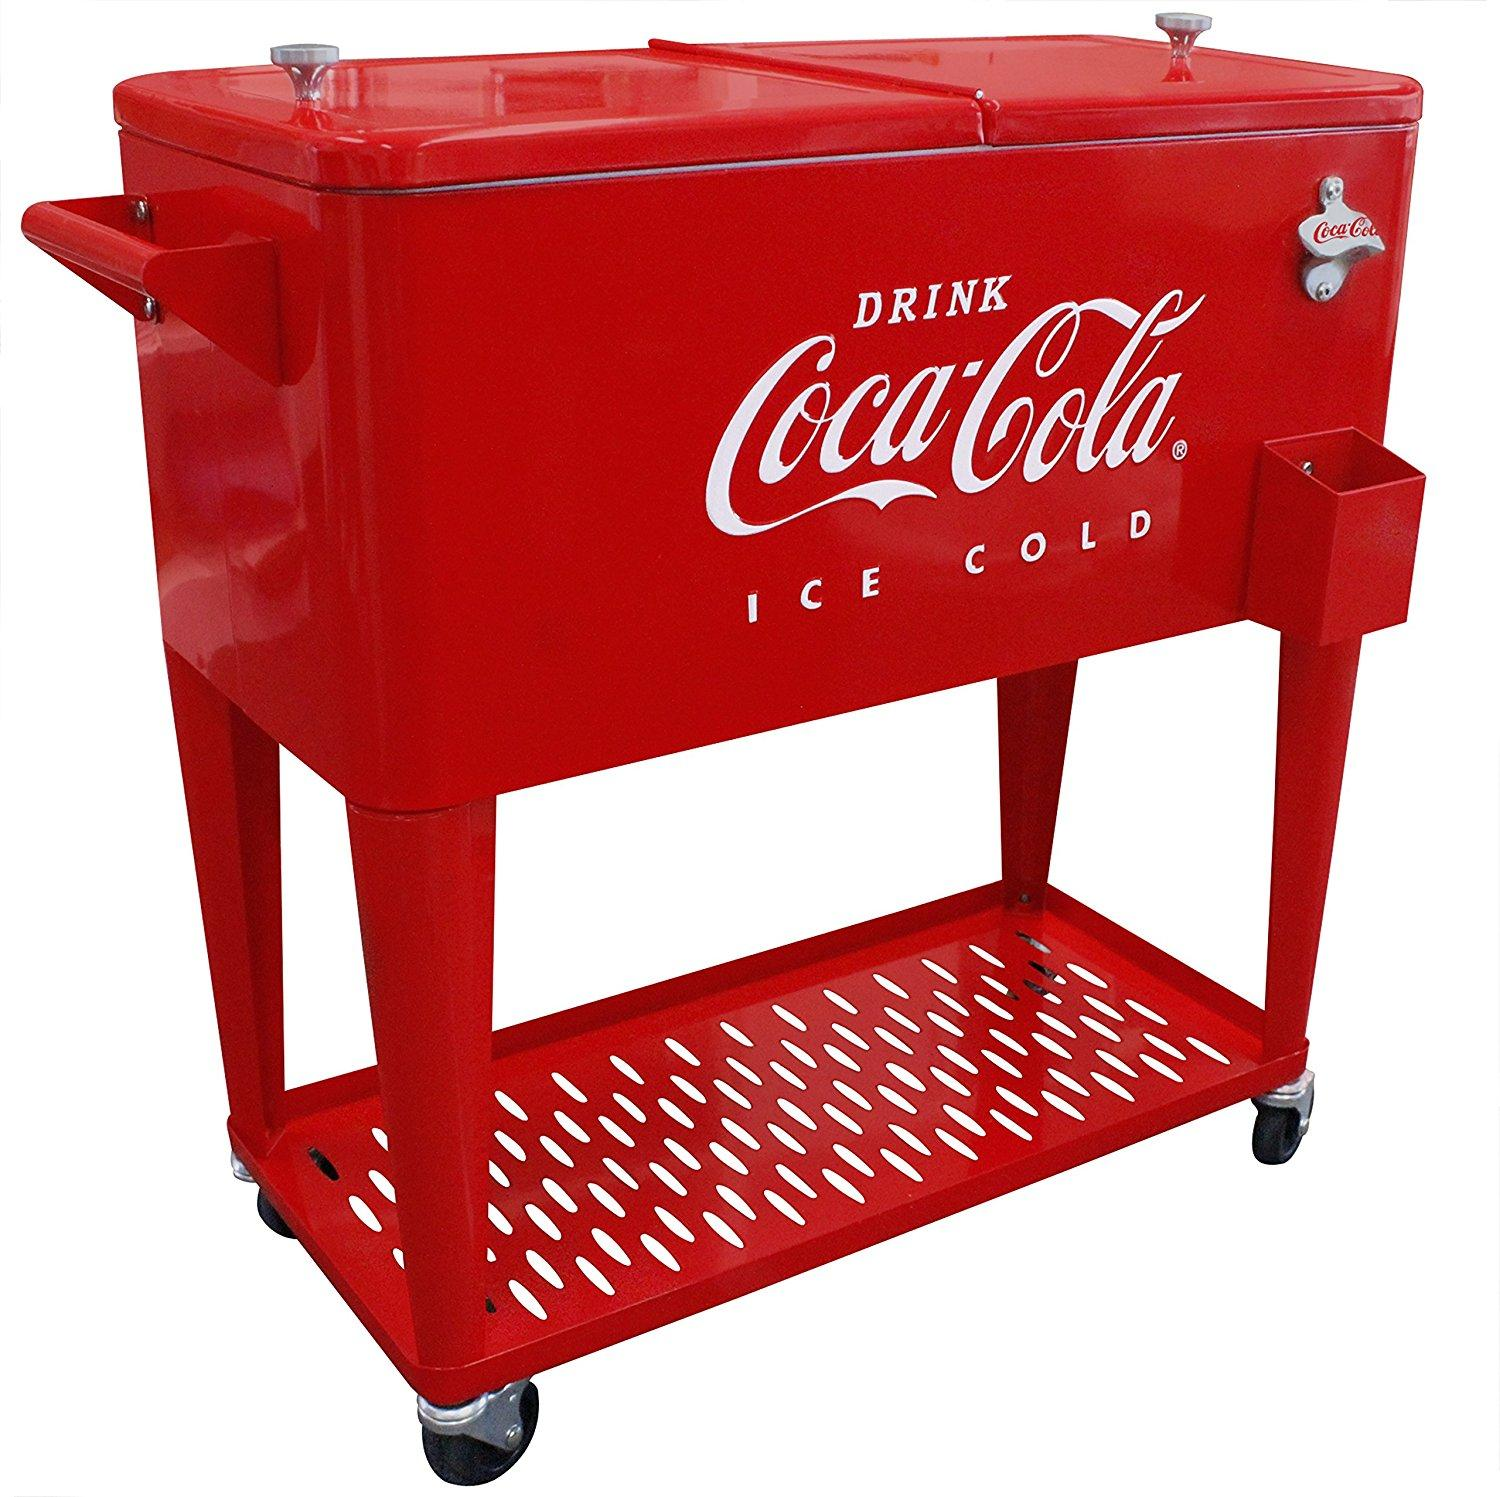 BRAND NEW Coca-Cola  Plastic Tray with 6-Pack